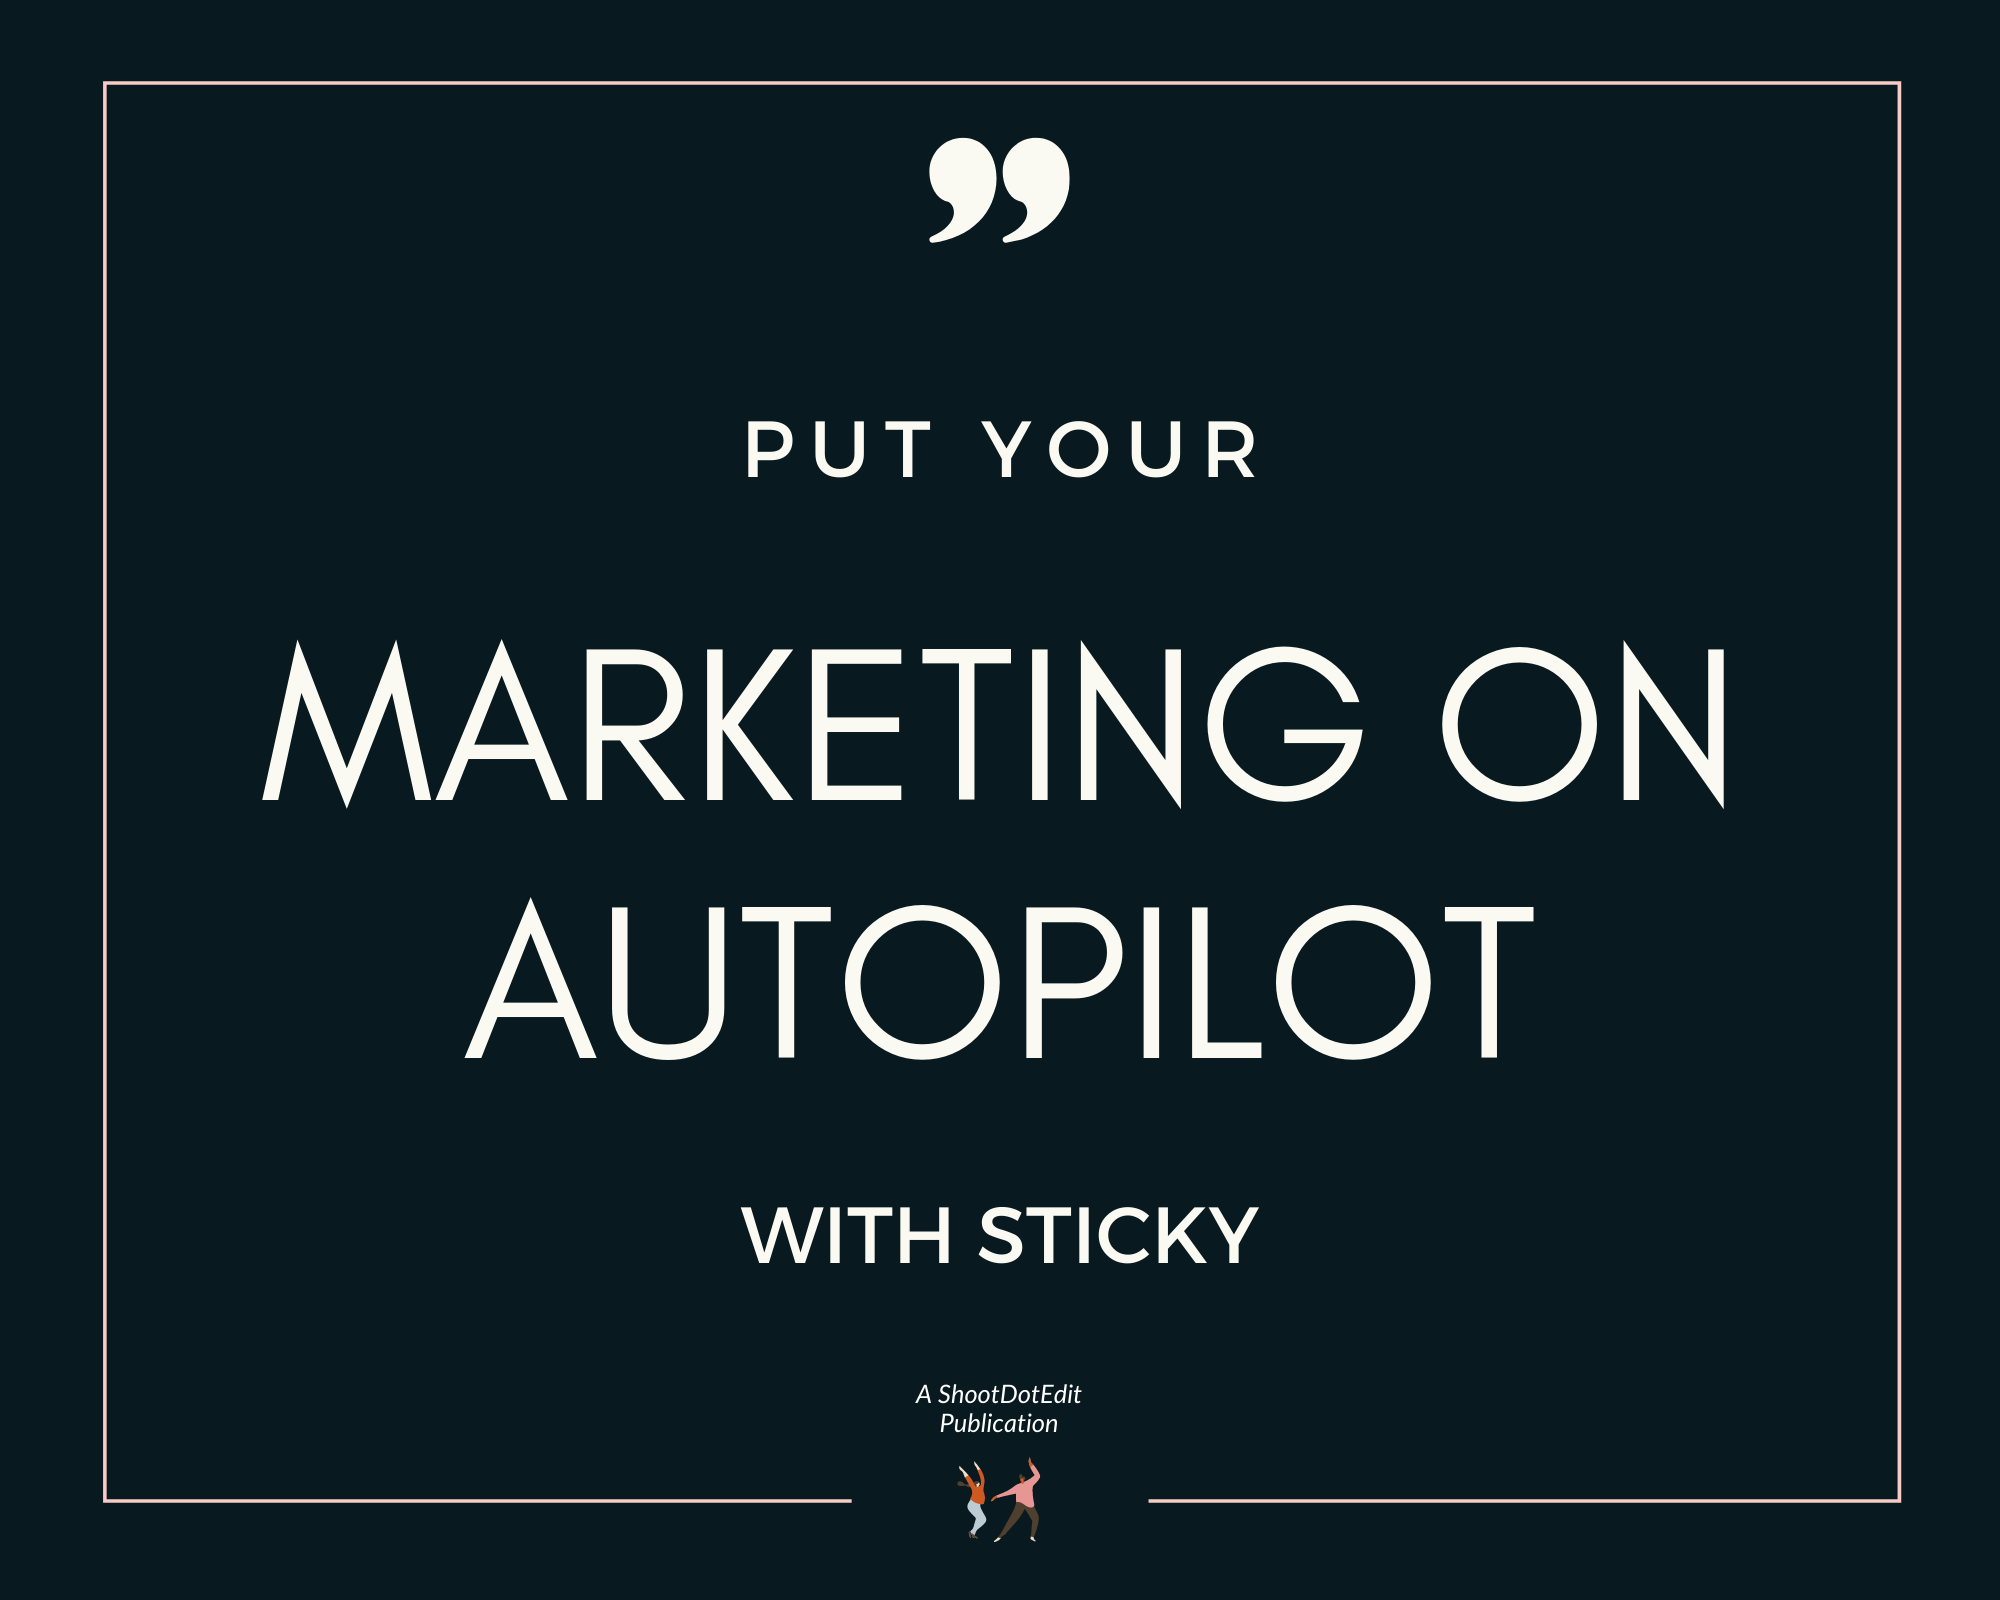 Infographic stating put your marketing on autopilot with Sticky Marketing Tools